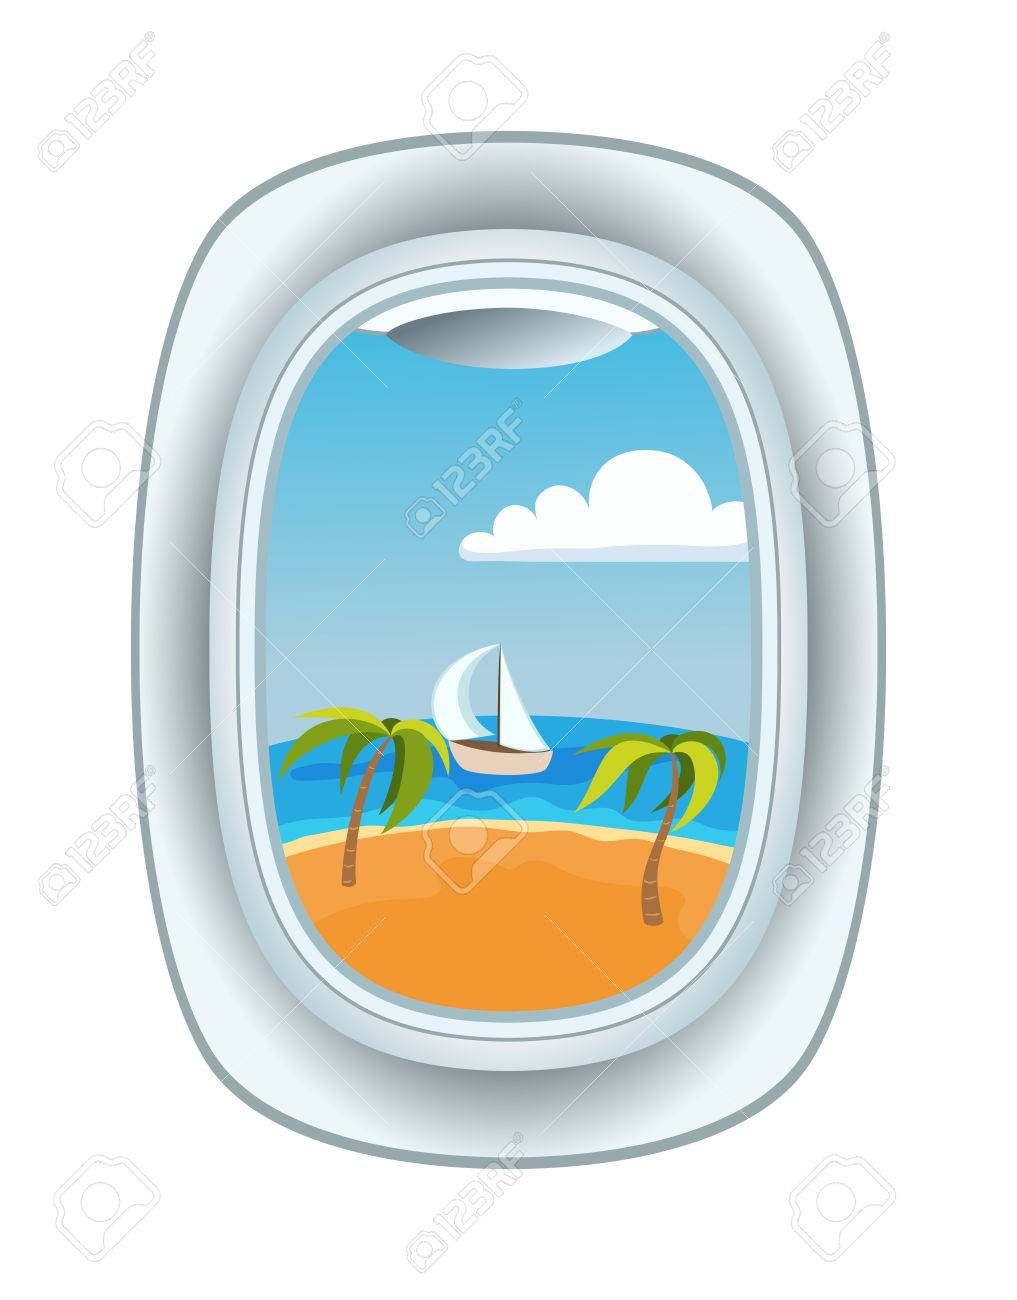 Airplane Window Nature Outdoor Landscape View Airplane Window View Holiday Vacation Airline Travel Clouds Sunset Airplane Window View Nature Travel Travel Airplane View Royalty Free Cliparts Vectors And Stock Illustration Image 59993561